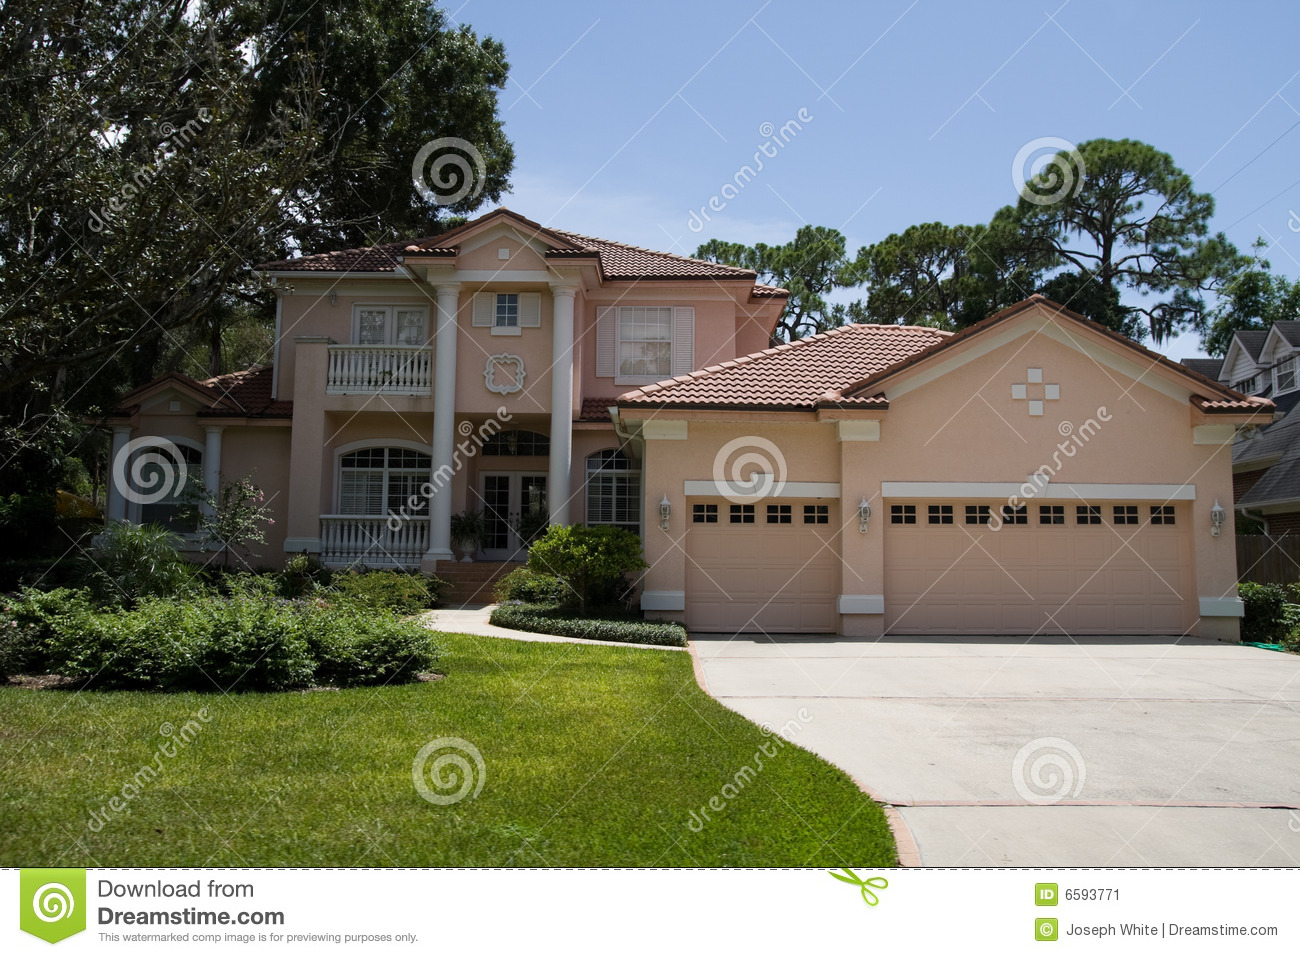 fancy-house-6593771.jpg